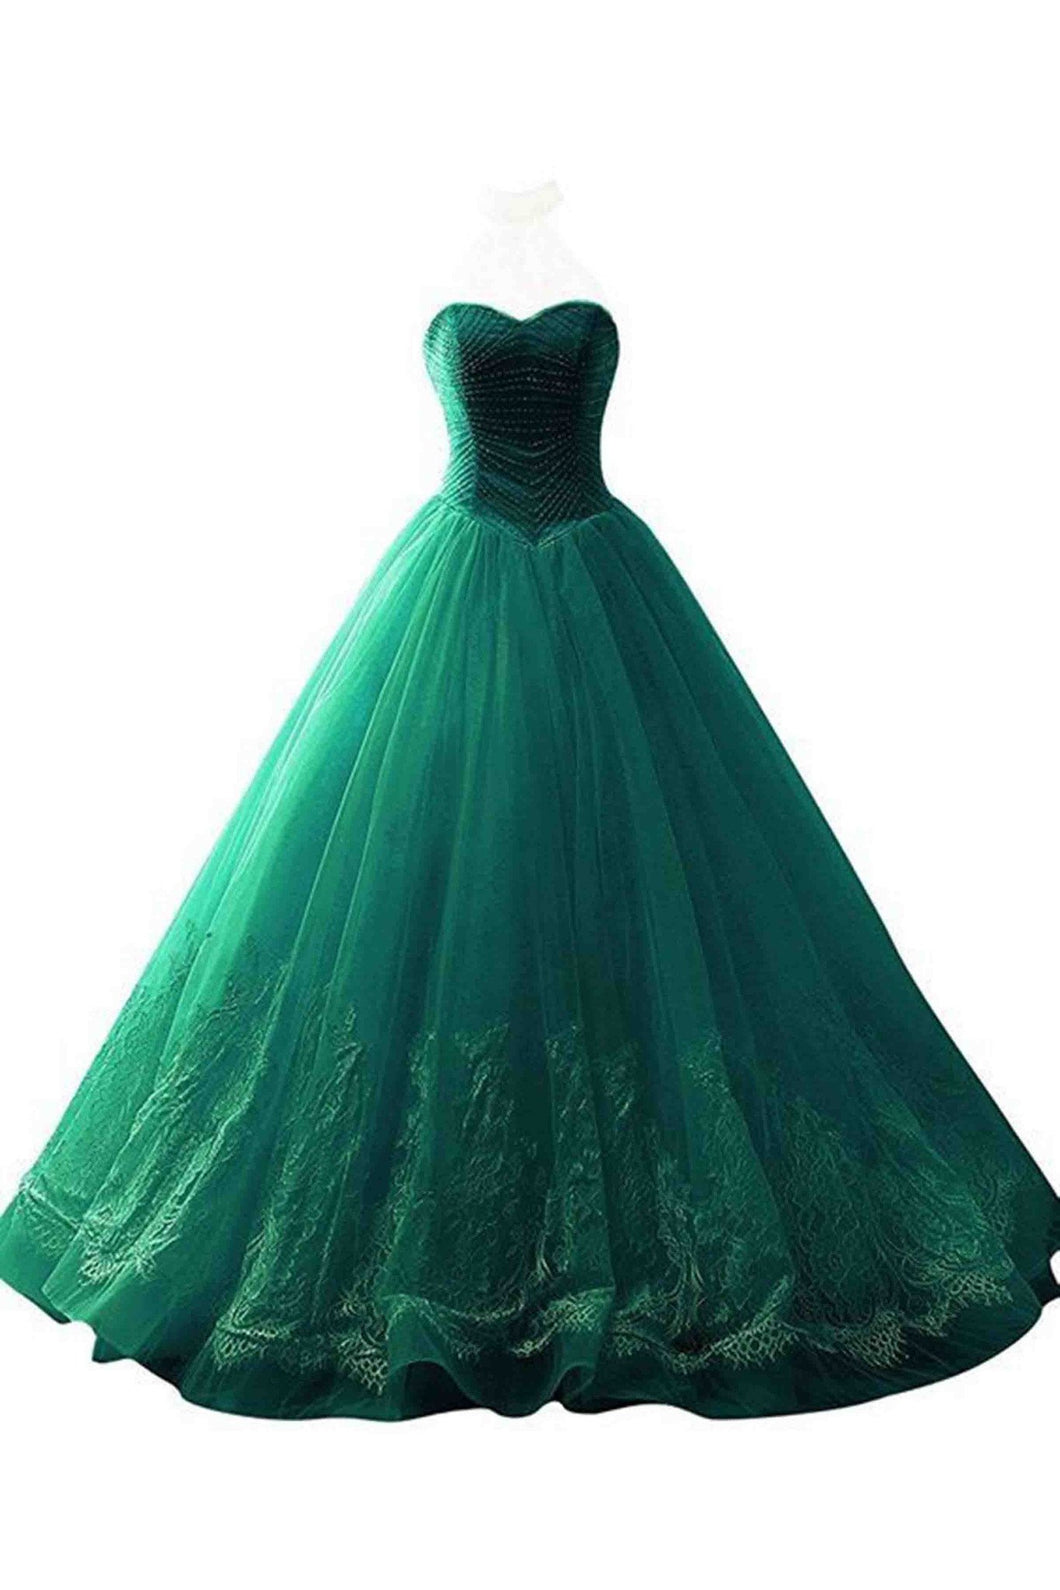 Sweet 16 Dresses | Green sweetheart ball gown dresses,with lace applique